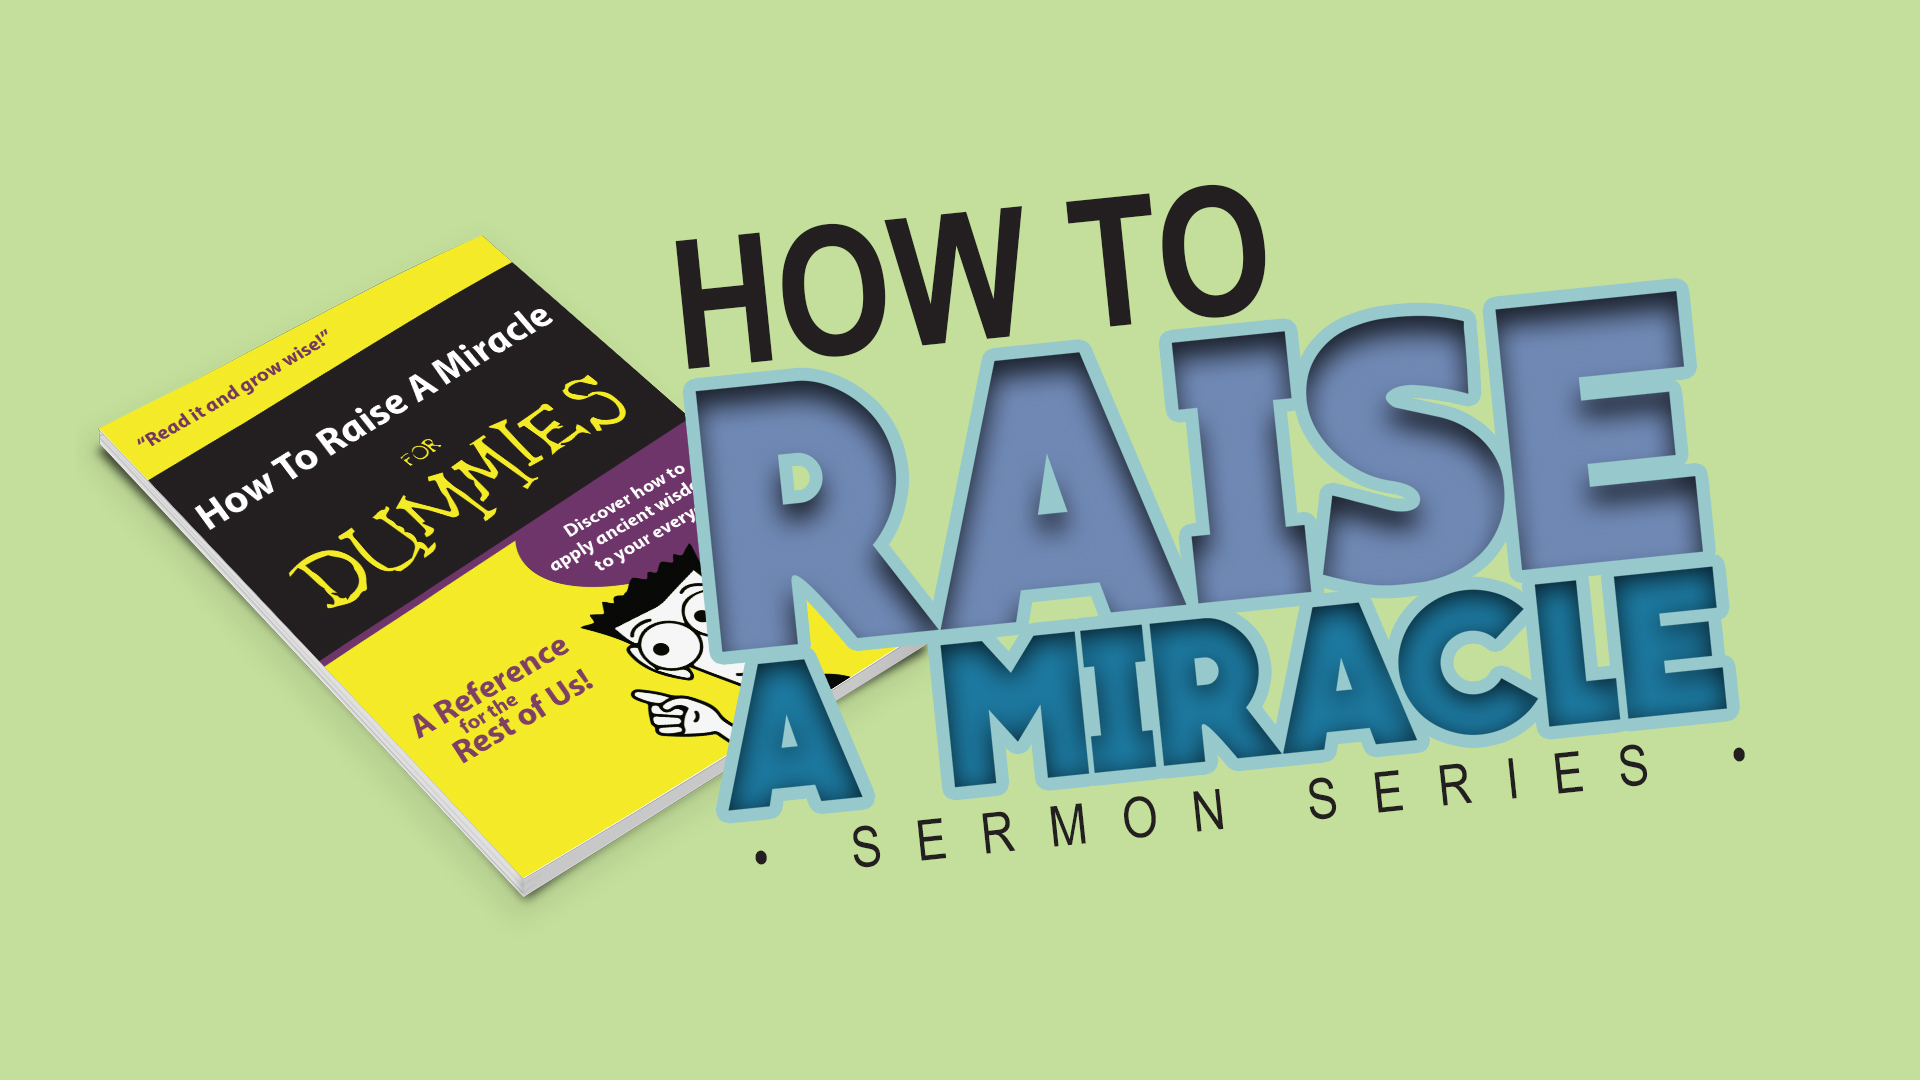 Website sermon - How to raise a miracle.jpg